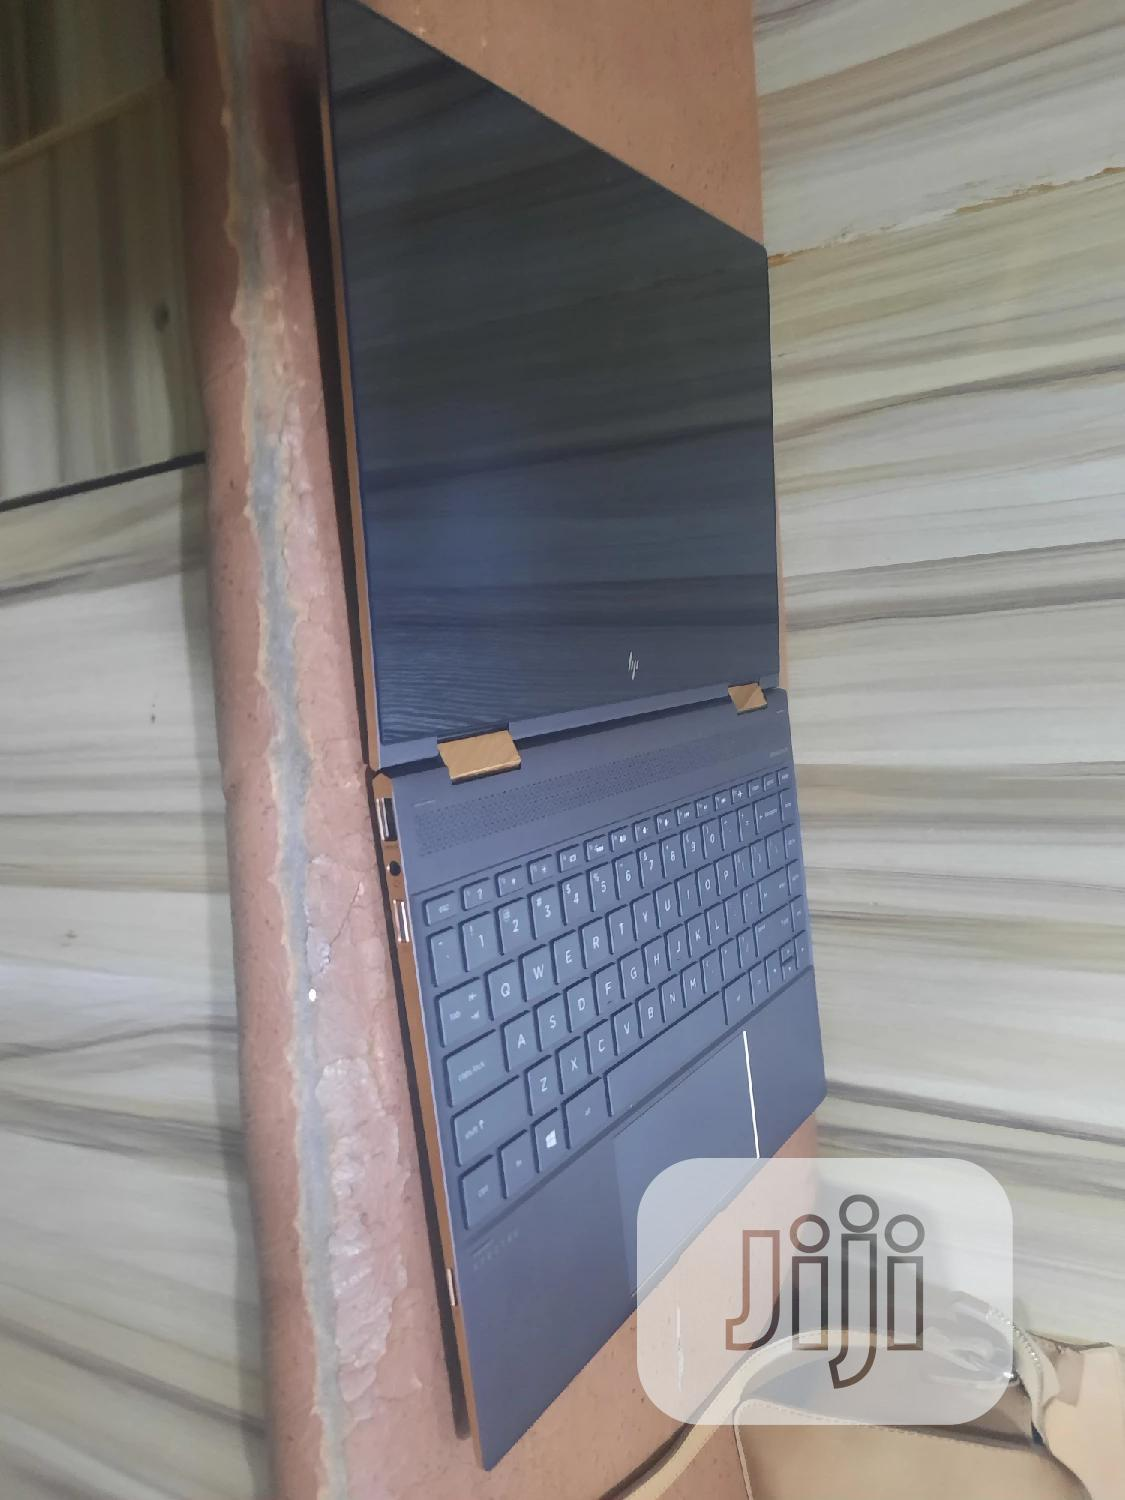 Laptop HP Spectre Xt 13 16GB Intel Core I7 SSD 512GB   Laptops & Computers for sale in Wuse 2, Abuja (FCT) State, Nigeria